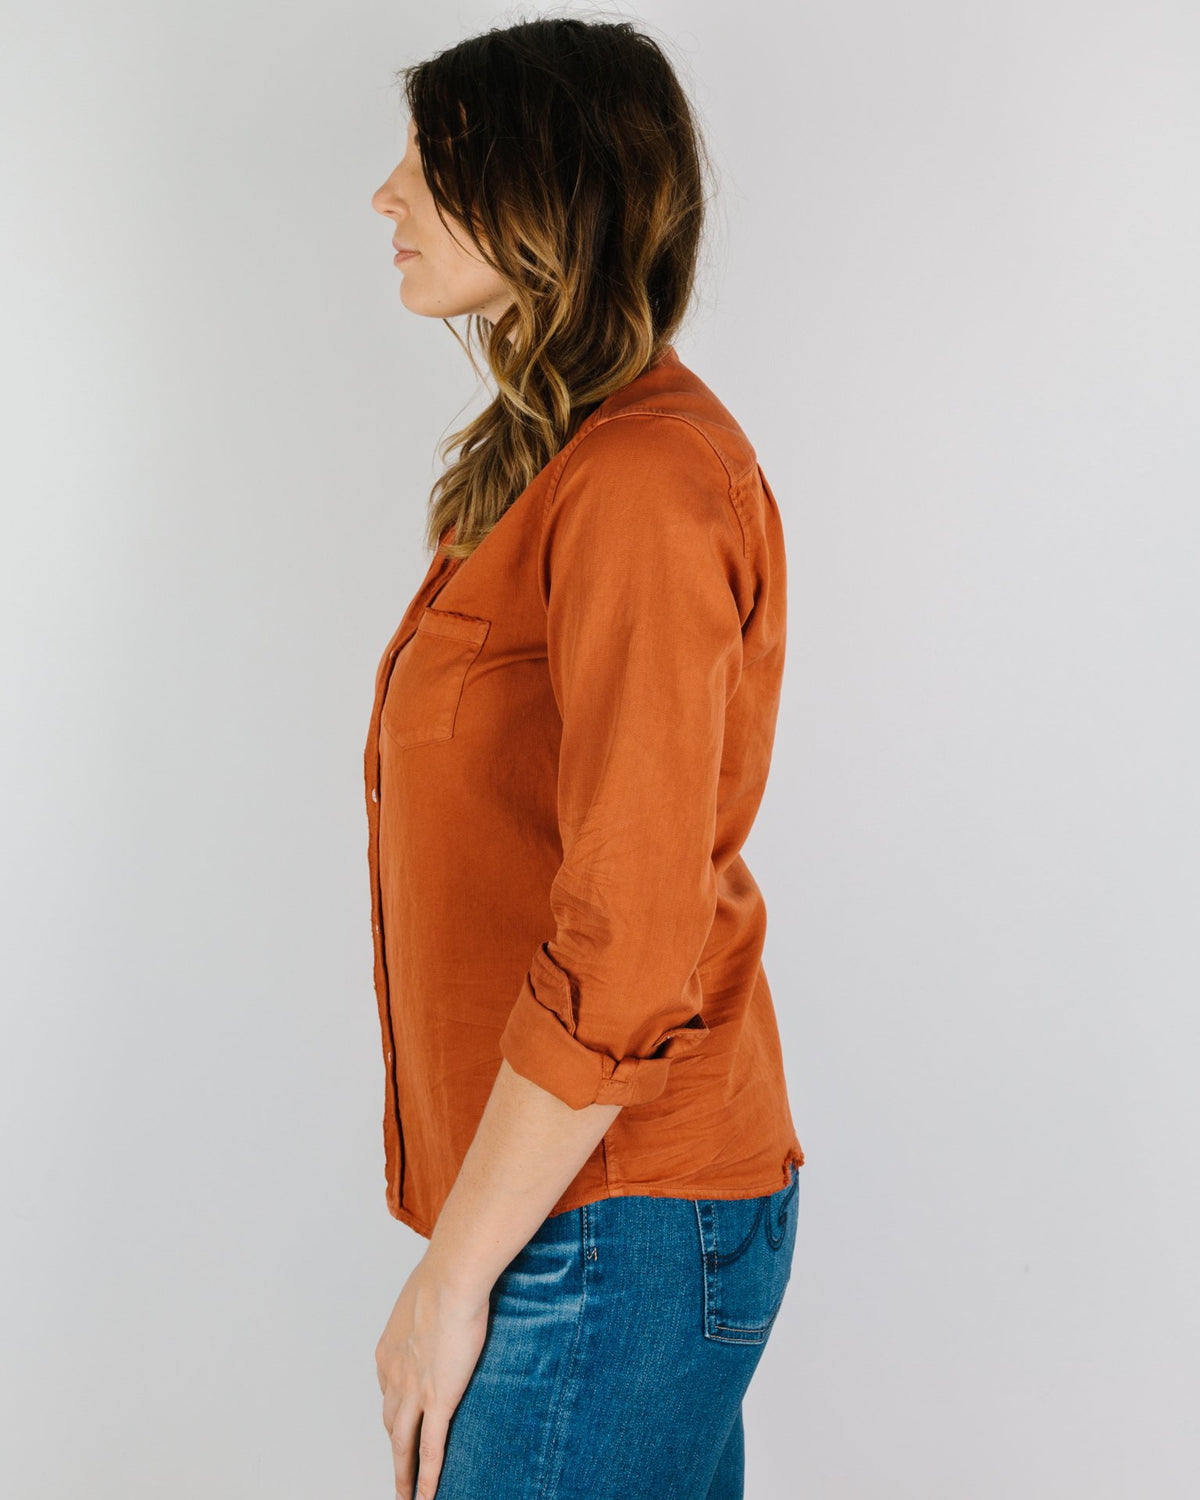 Frank & Eileen Clothing Barry in Rust Famous Denim